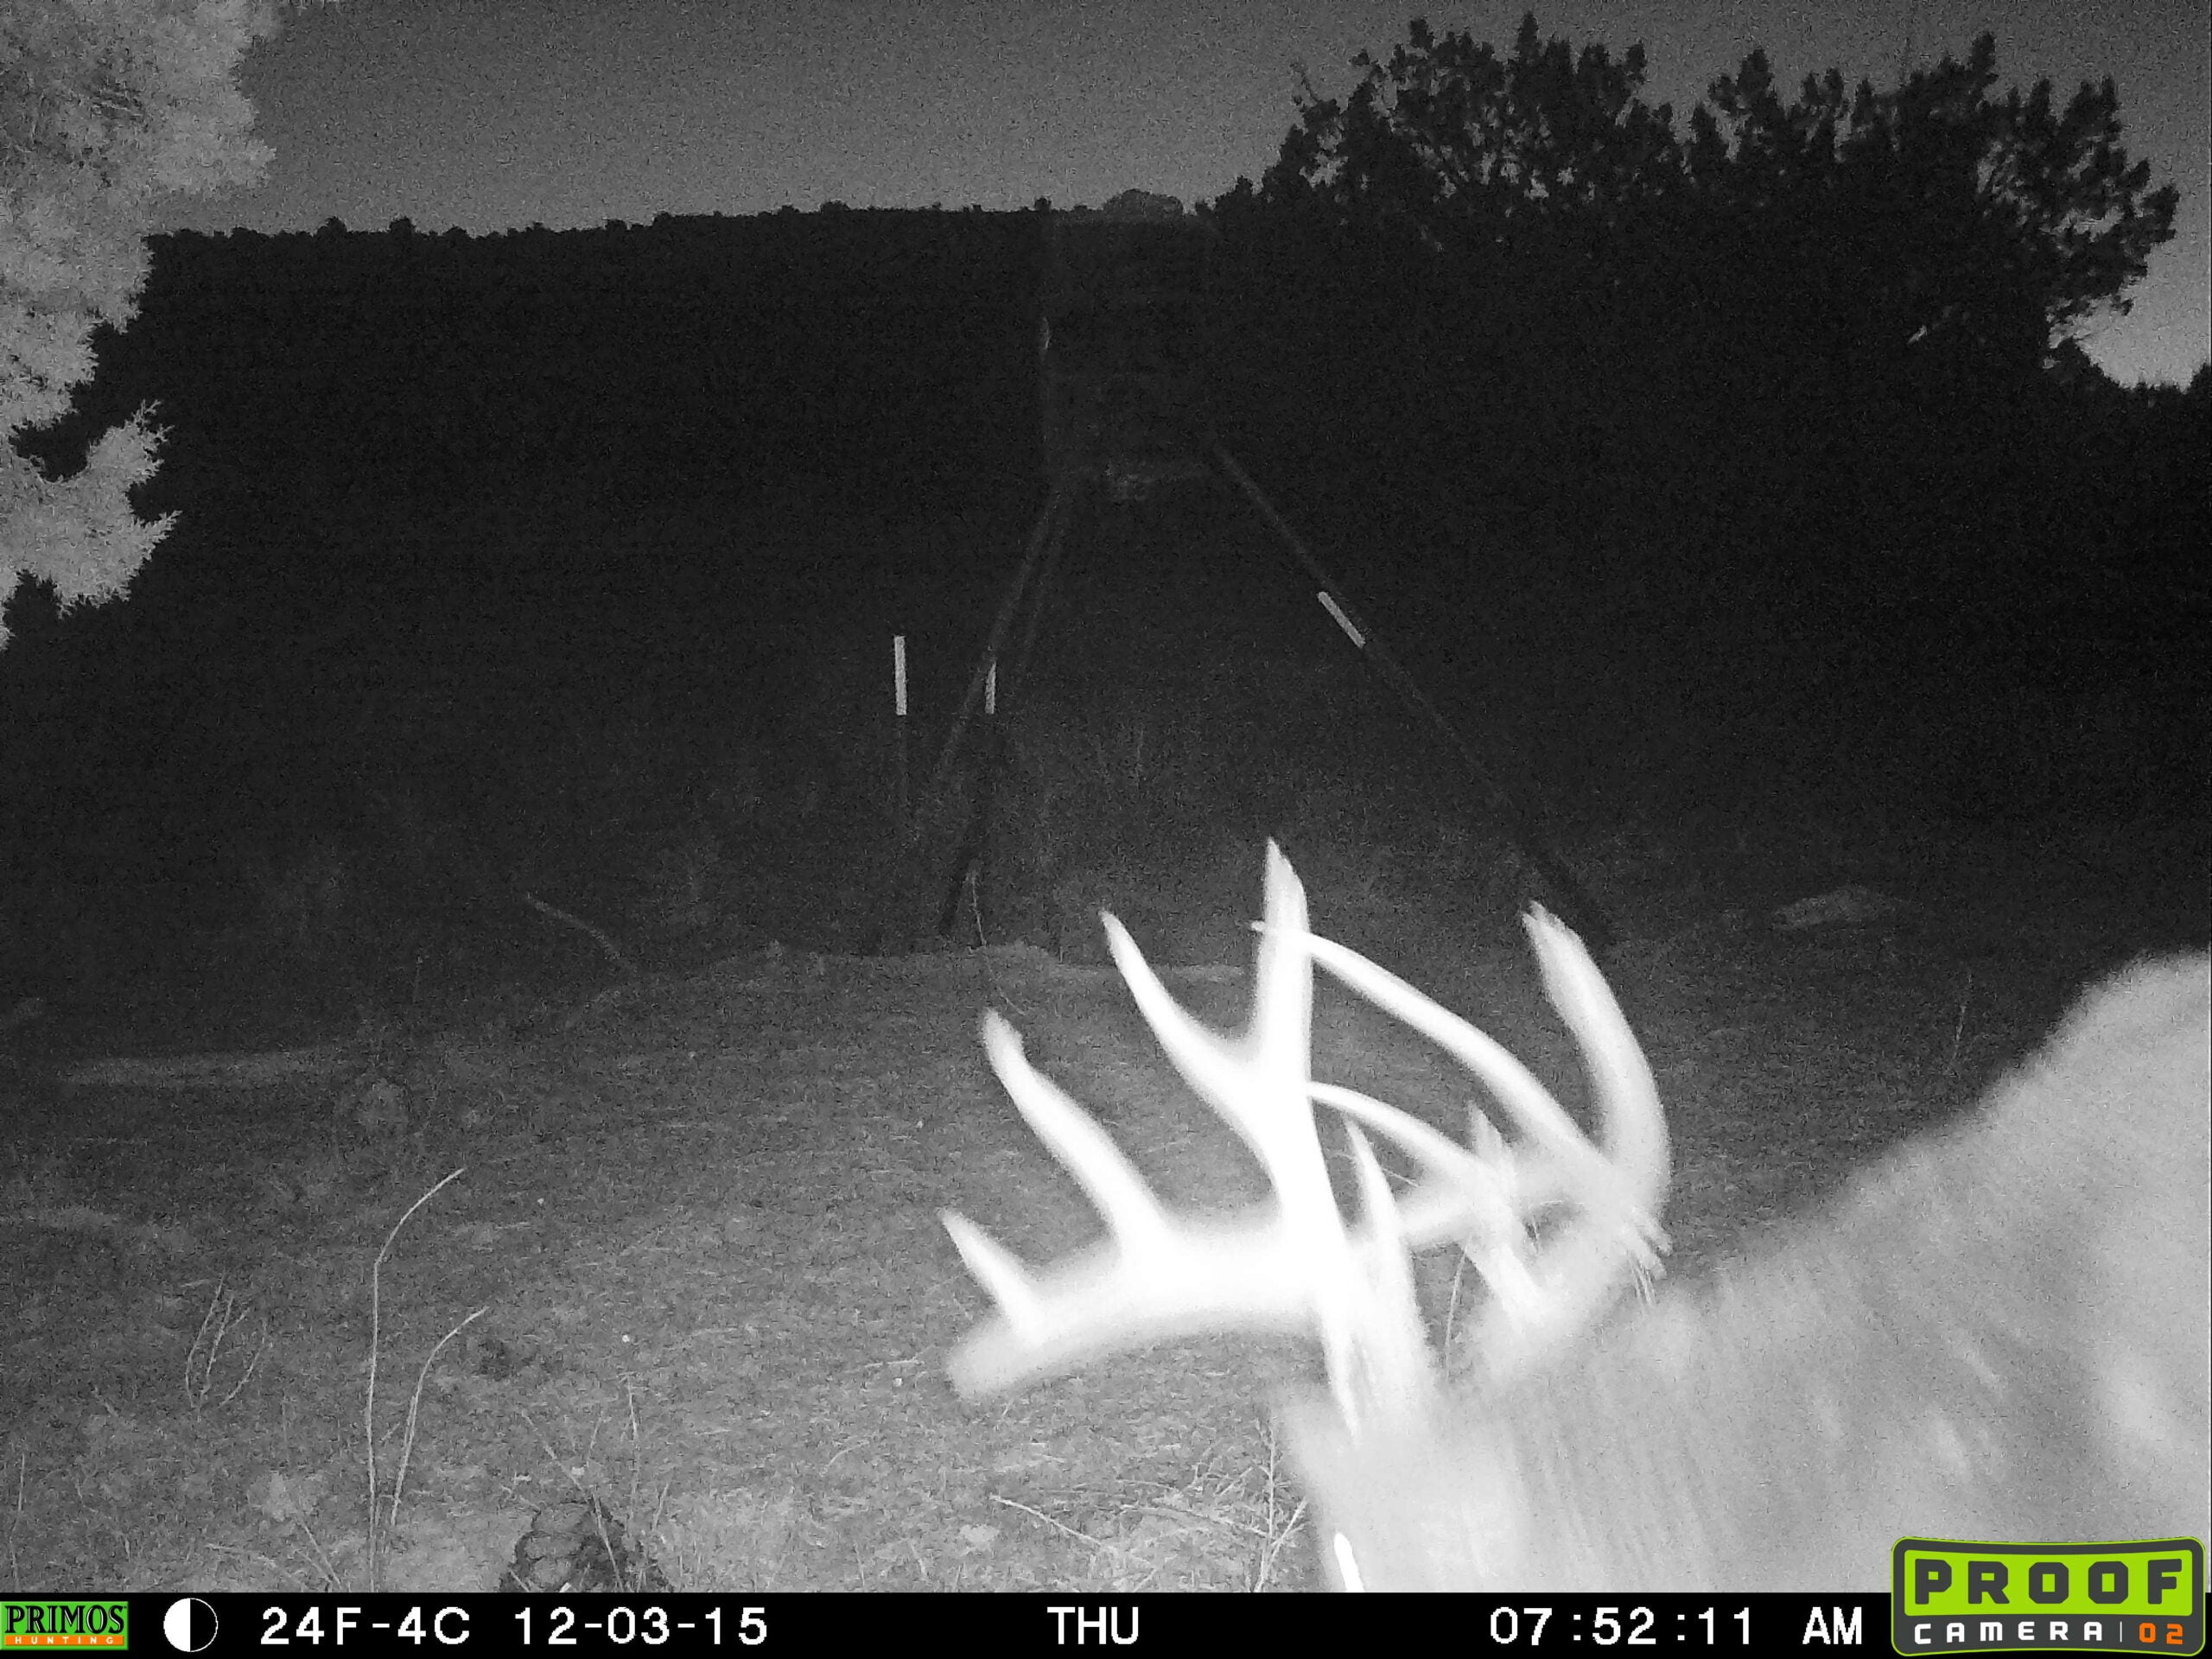 Giant Non-Typical Whitetail Makes a Late-Season Appearance